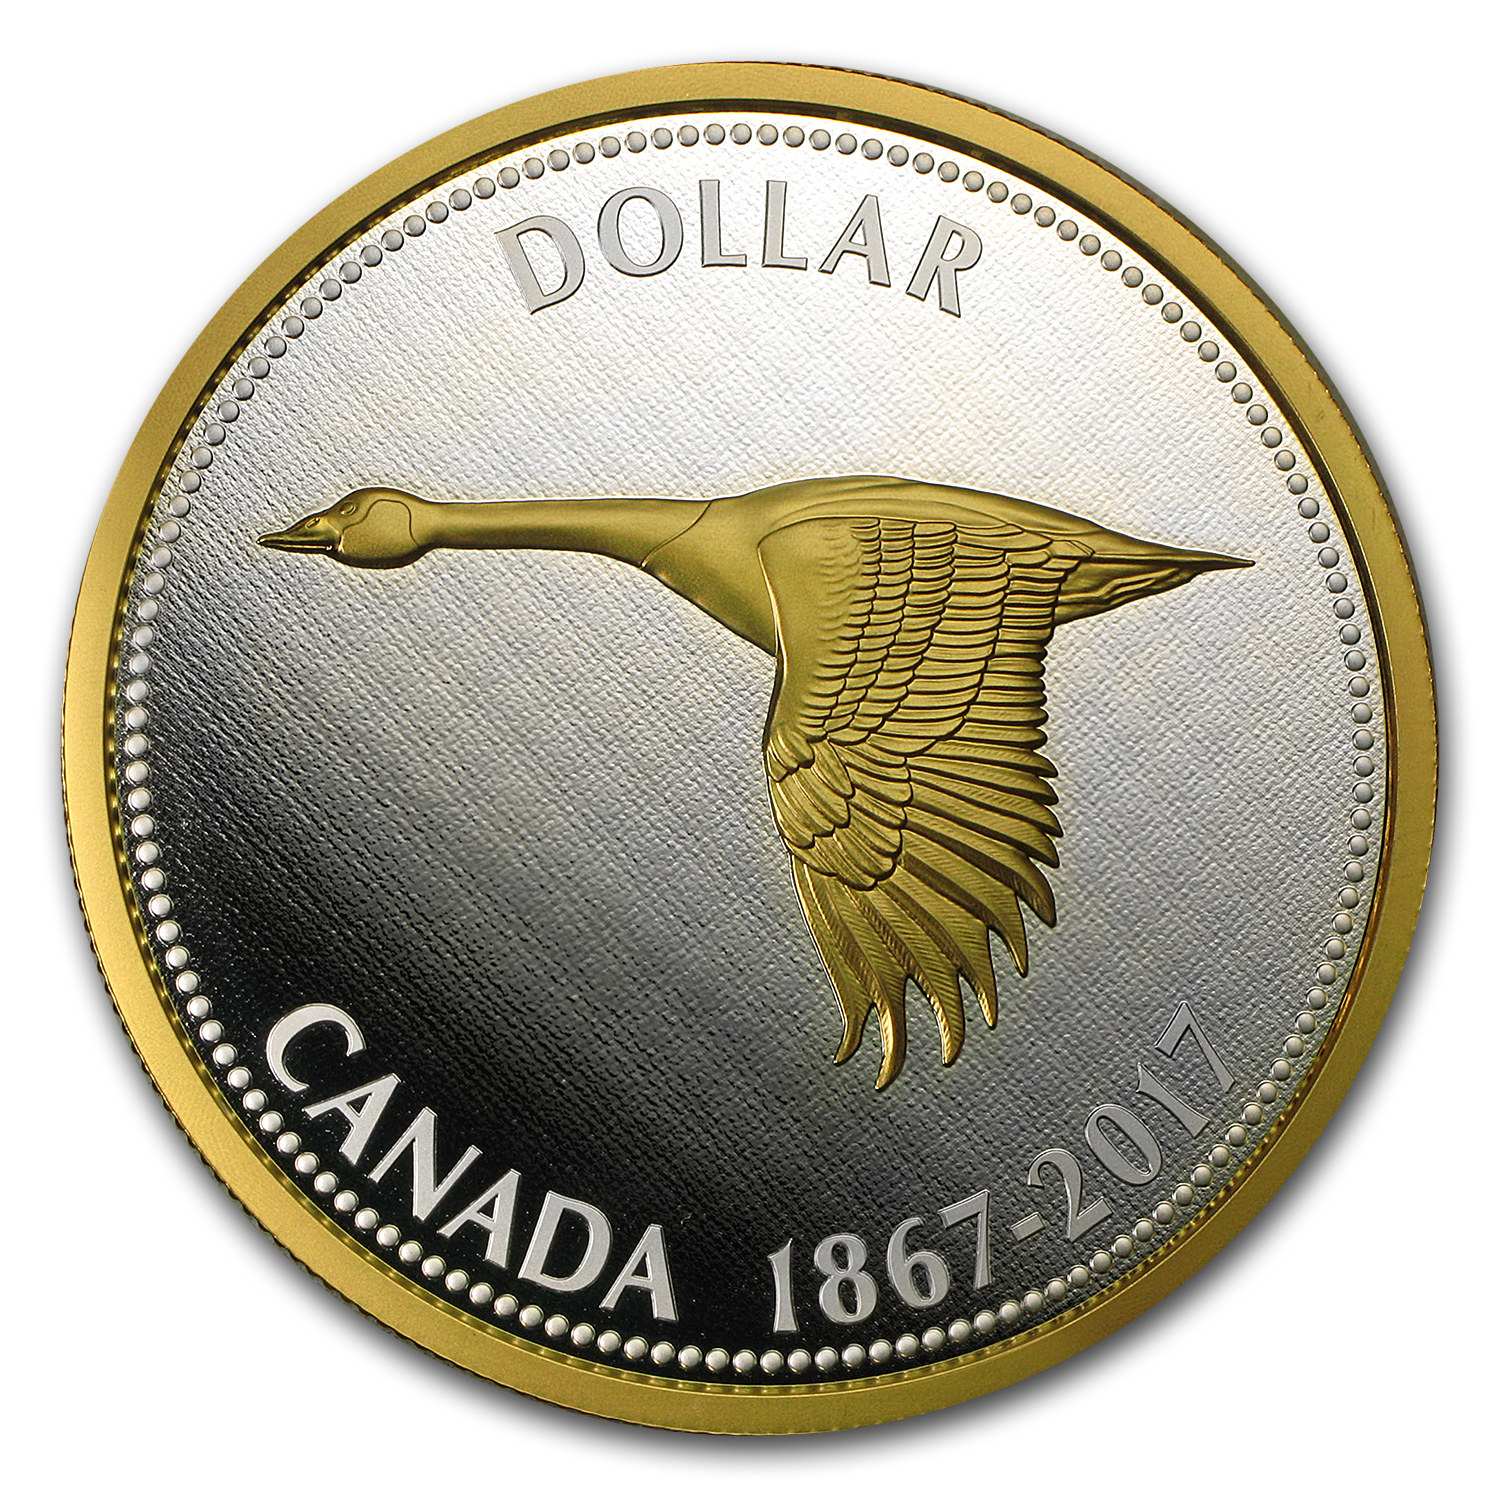 2017 Canada 5 oz Silver $1 Big Coin Series (Alex Colville Dollar)